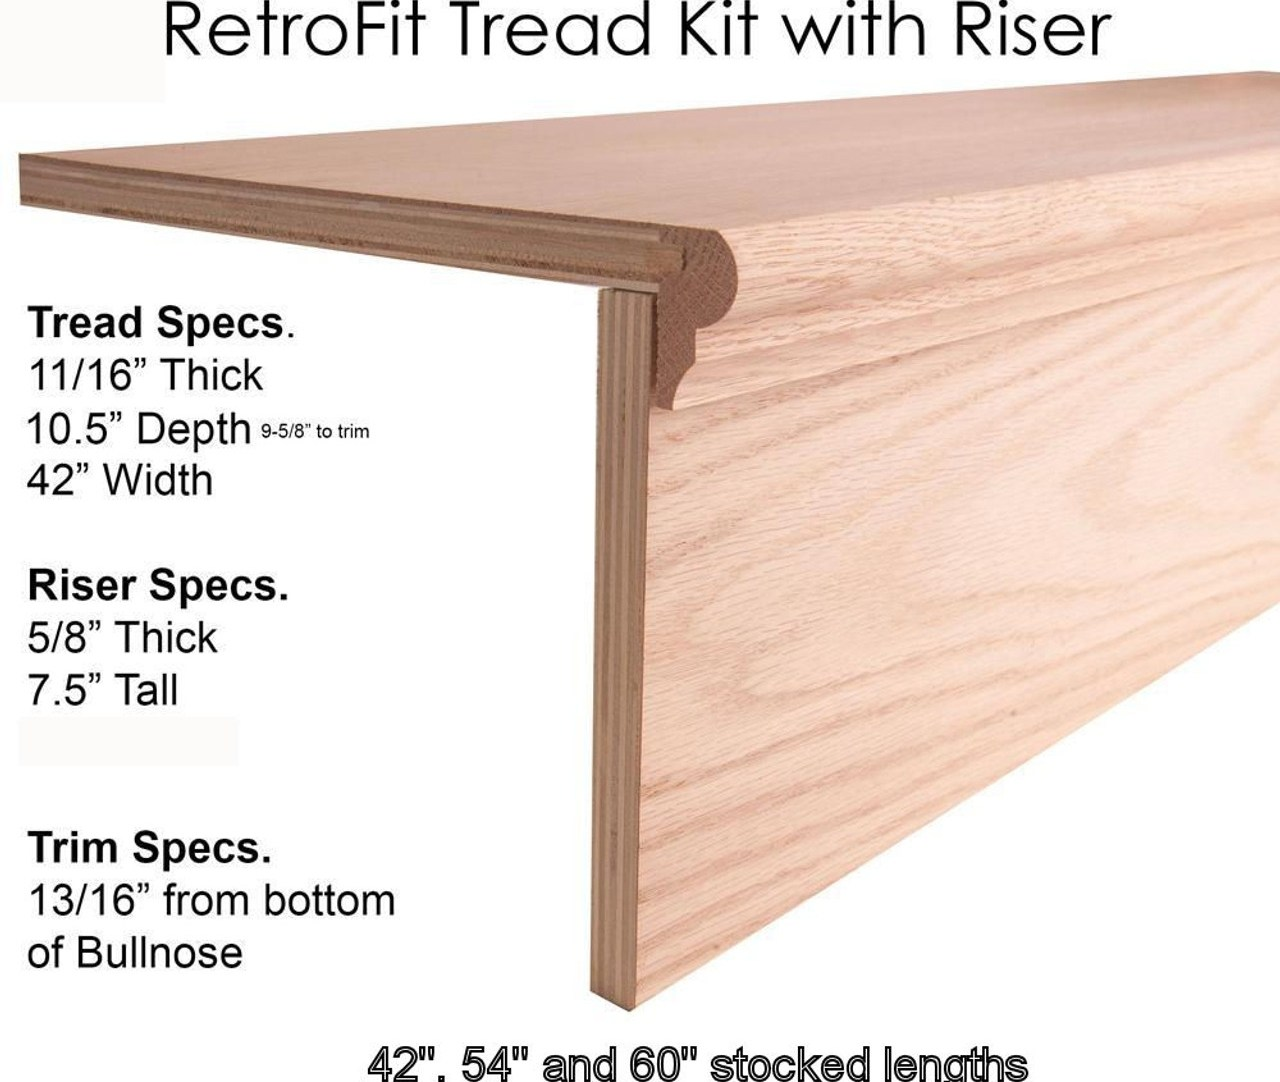 8070 Retro Treads Red Oak No Returns Westfire Stair Parts 0174   Oak Replacement Stair Treads   Stringer   Stair Stringers   Risers   Wood Stair   White Oak